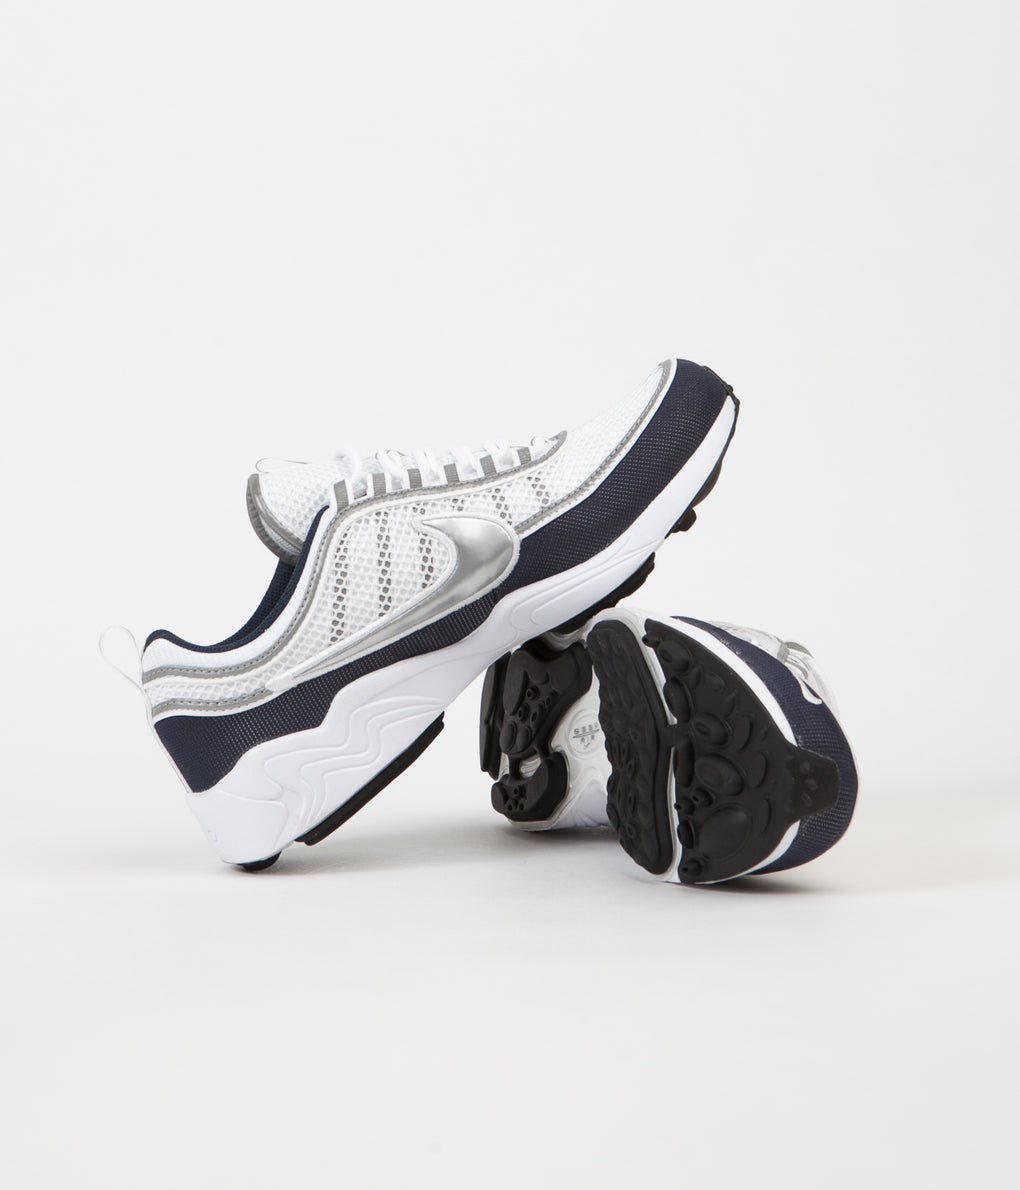 Nike Air Zoom  Spiridon '16 Shoes - White / Metallic Silver - Armory Navy - Black